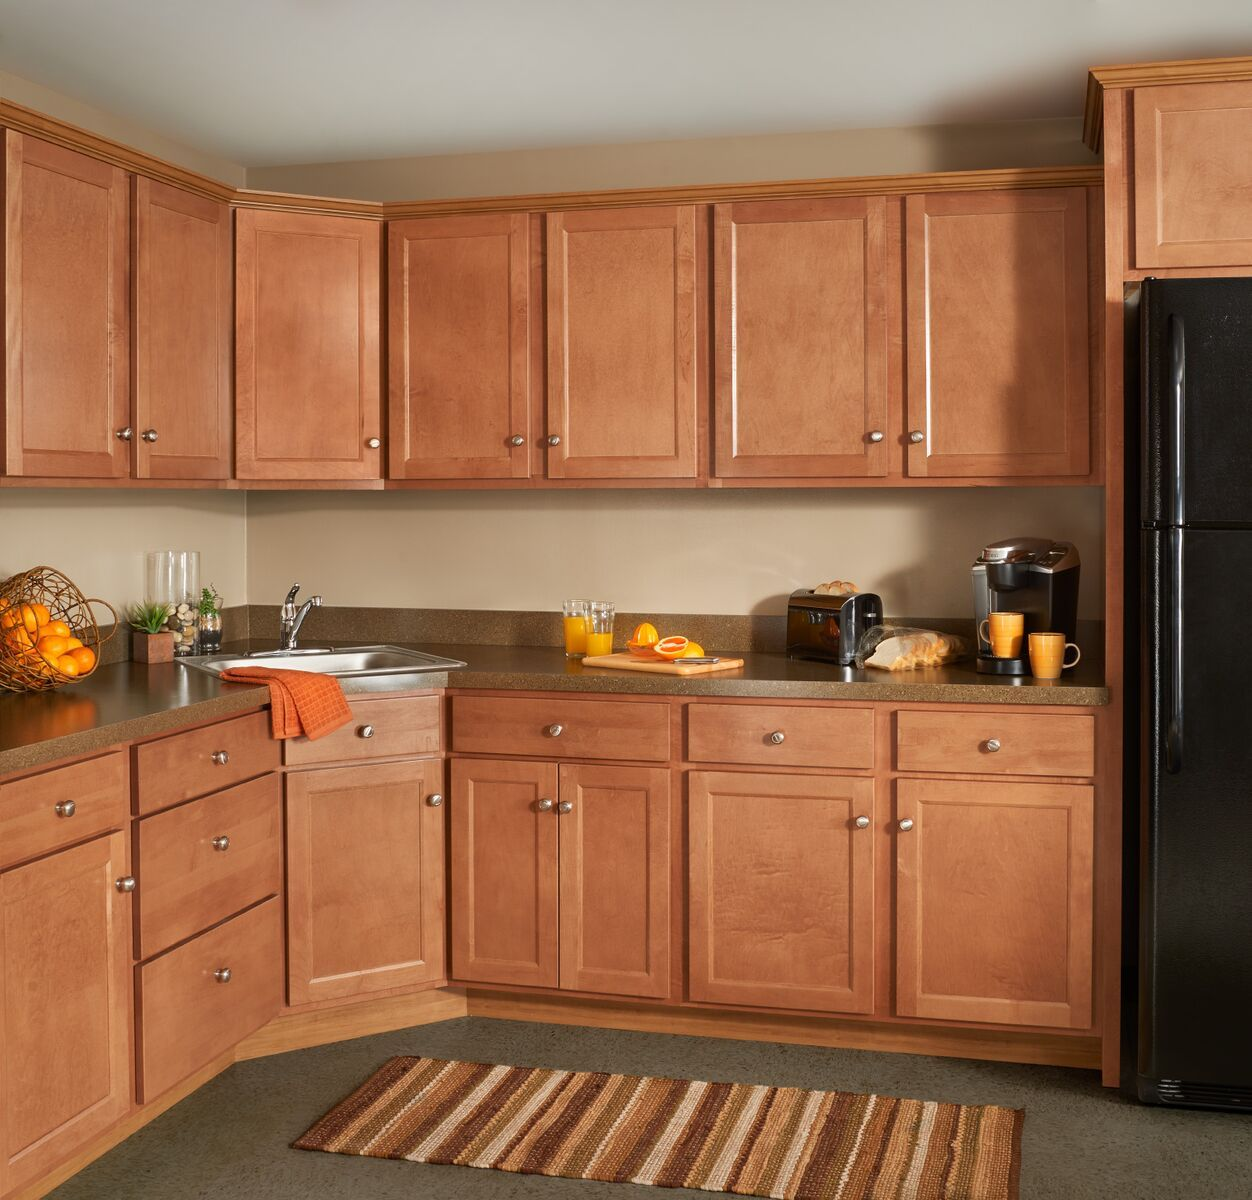 Affordable Kitchen Cabinets Wolf Home Products Affordable Kitchen Cabinets Kitchen Cabinets Kitchen